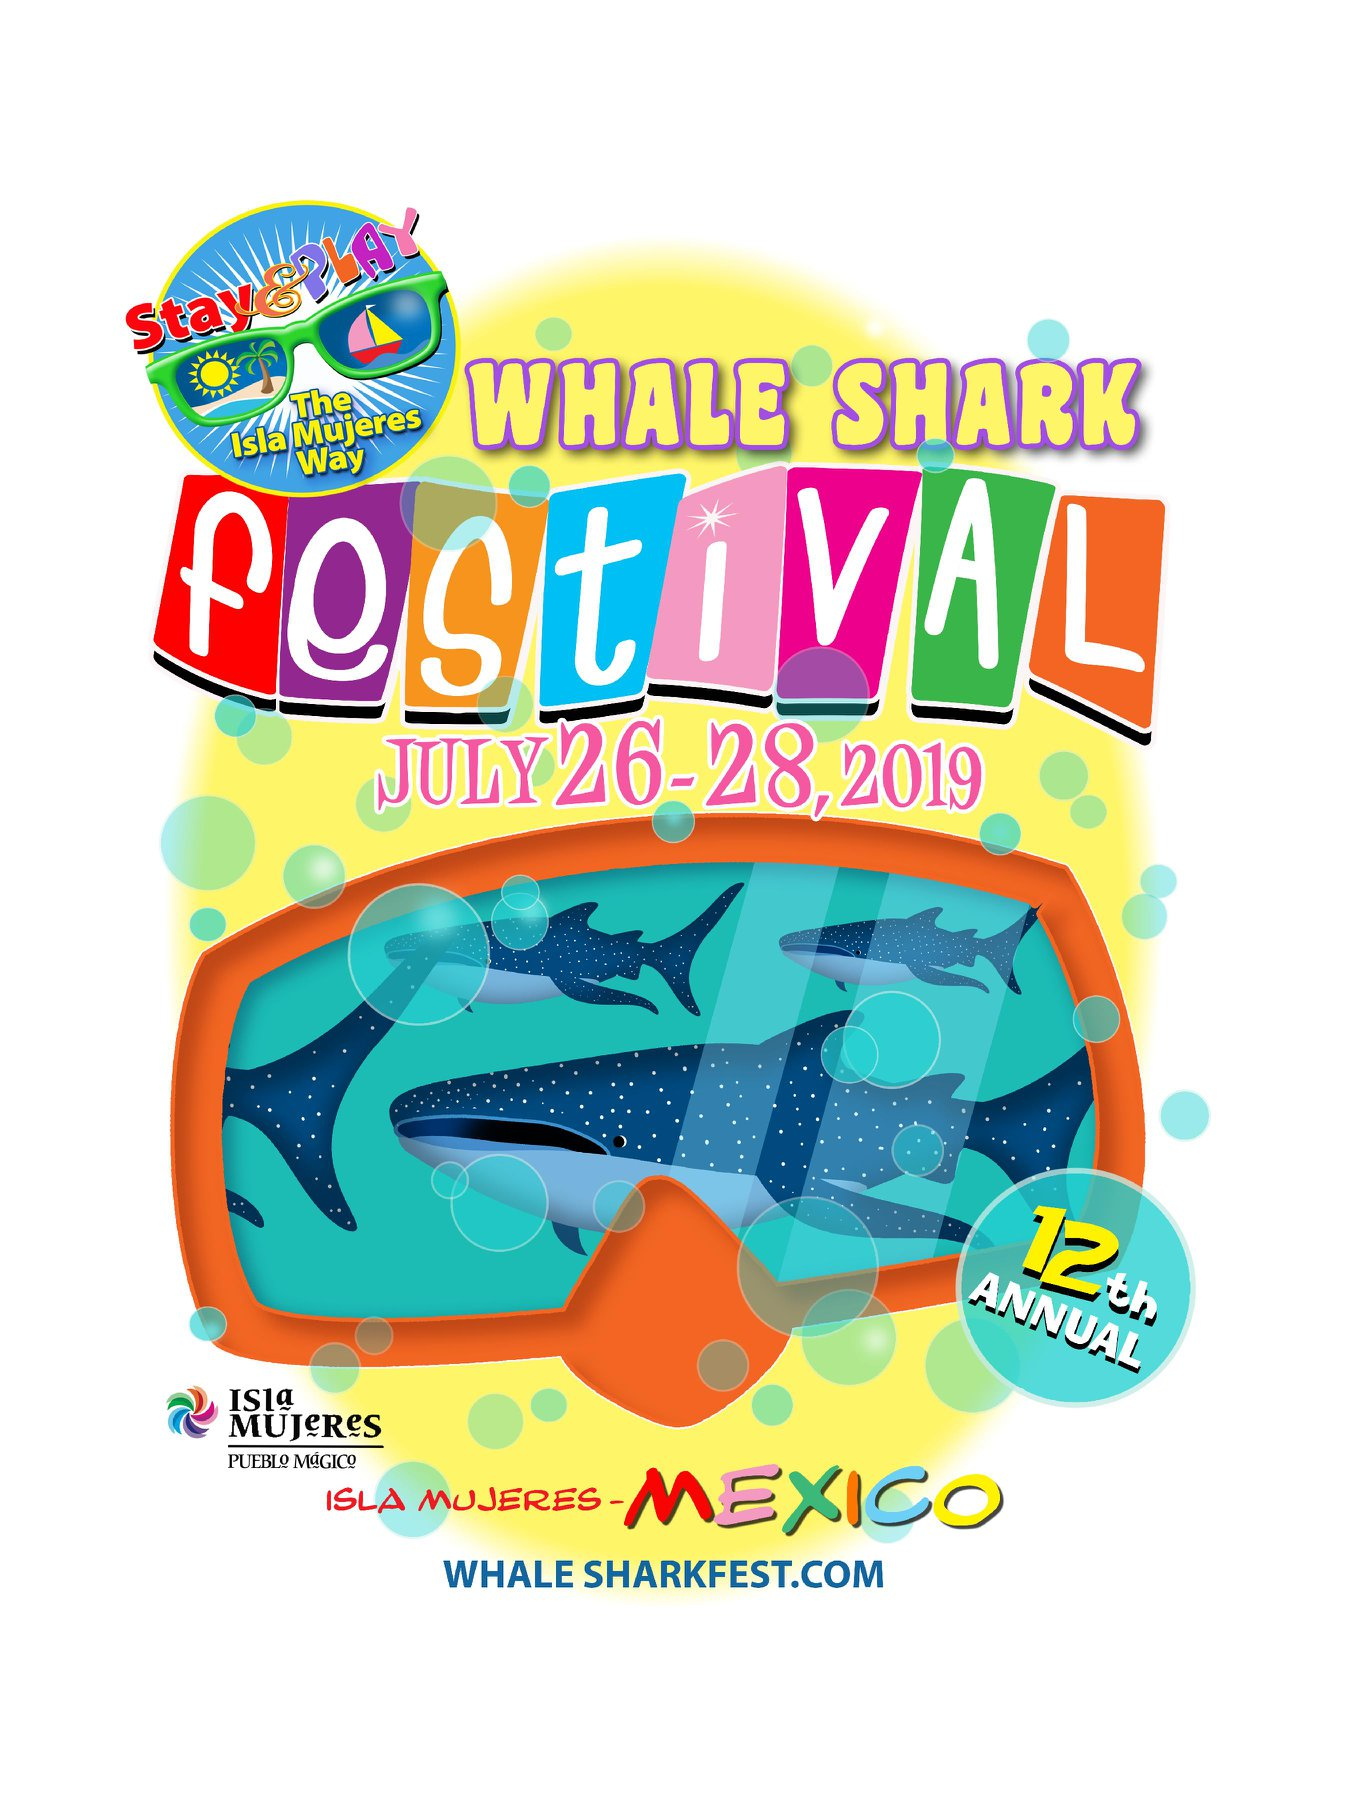 Whale Shark Festival Logo 2019 New Dates